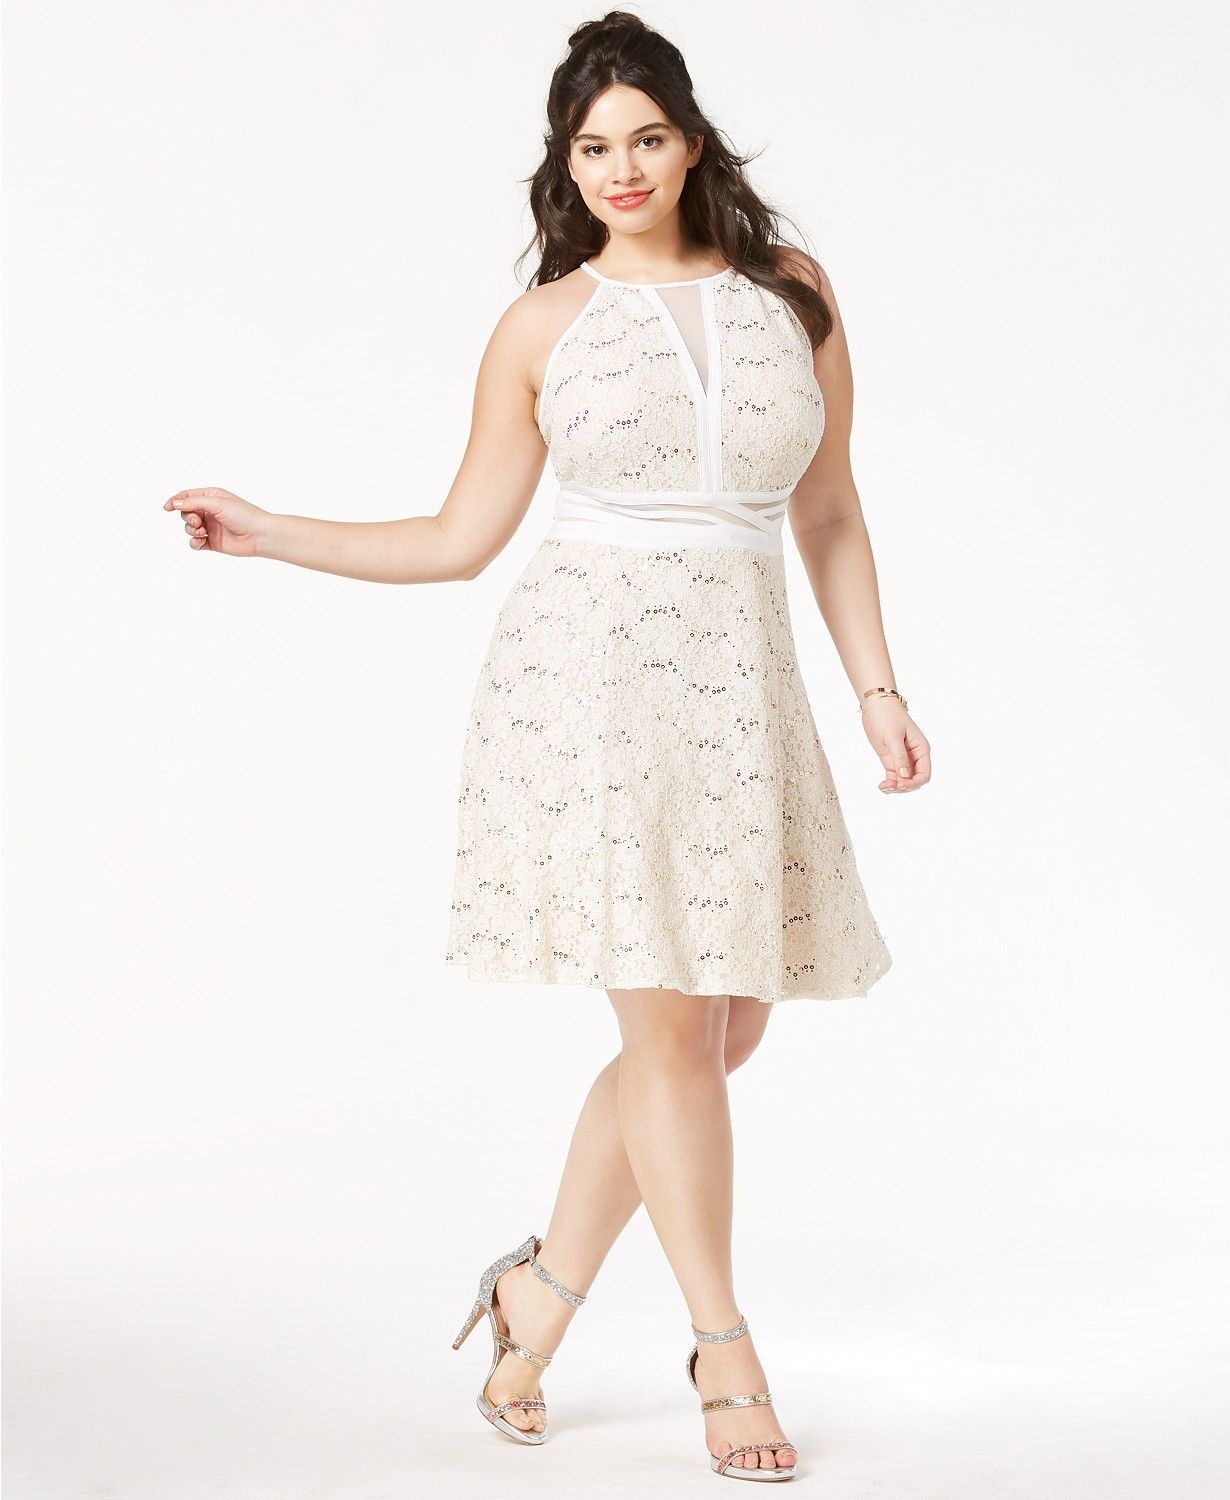 Morgan Company Trendy Plus Size Lace Fit Flare Dress Dresses Plus Sizes Macy S Fit Flare Dress White Flare Dress Trendy Plus Size Clothing [ 1500 x 1230 Pixel ]